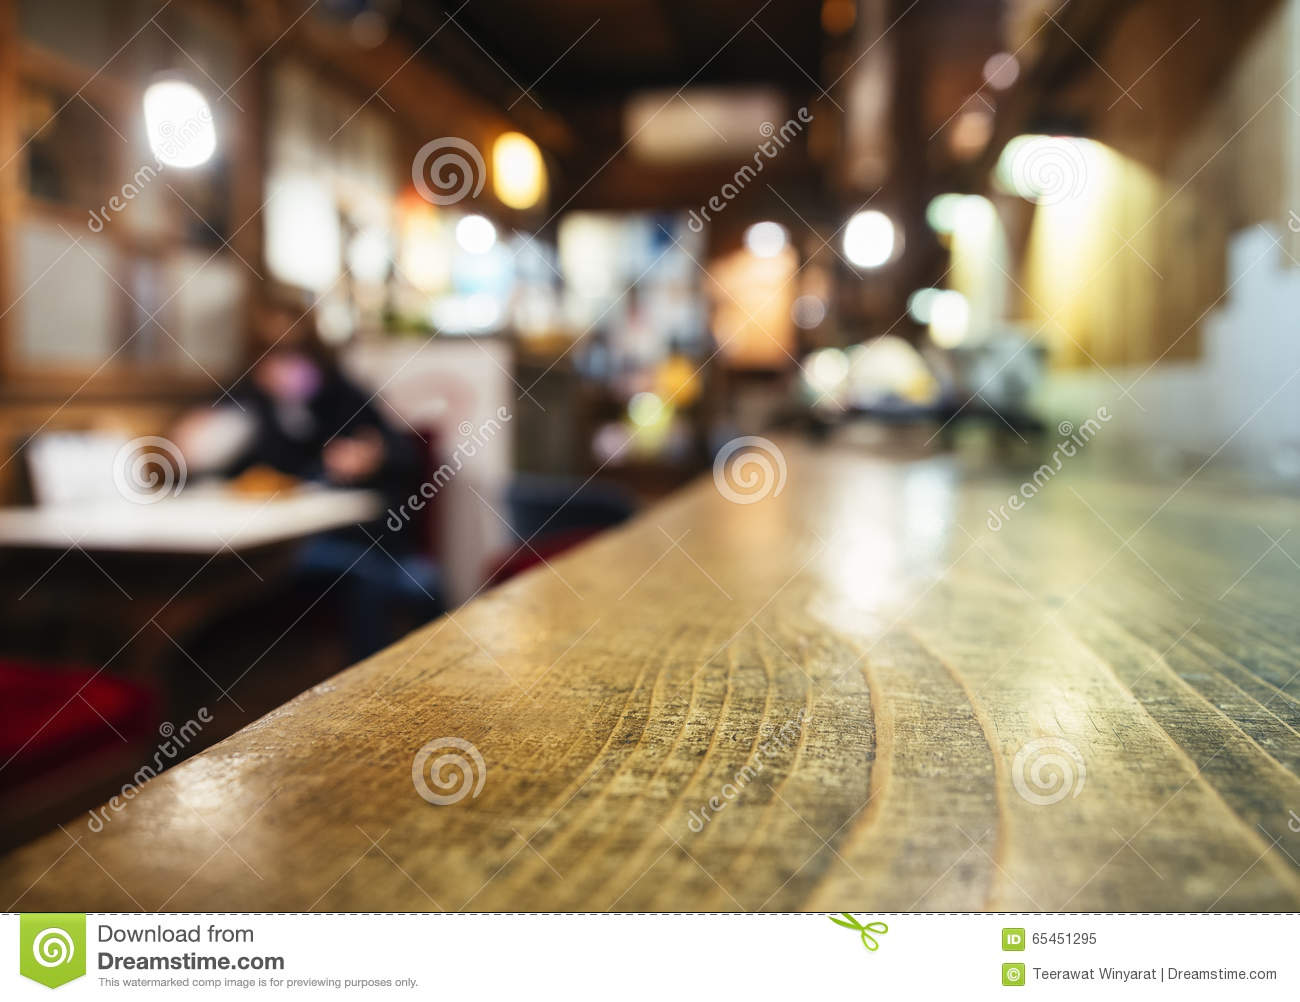 Restaurant Background With People table top counter bar blurred restaurant background with people